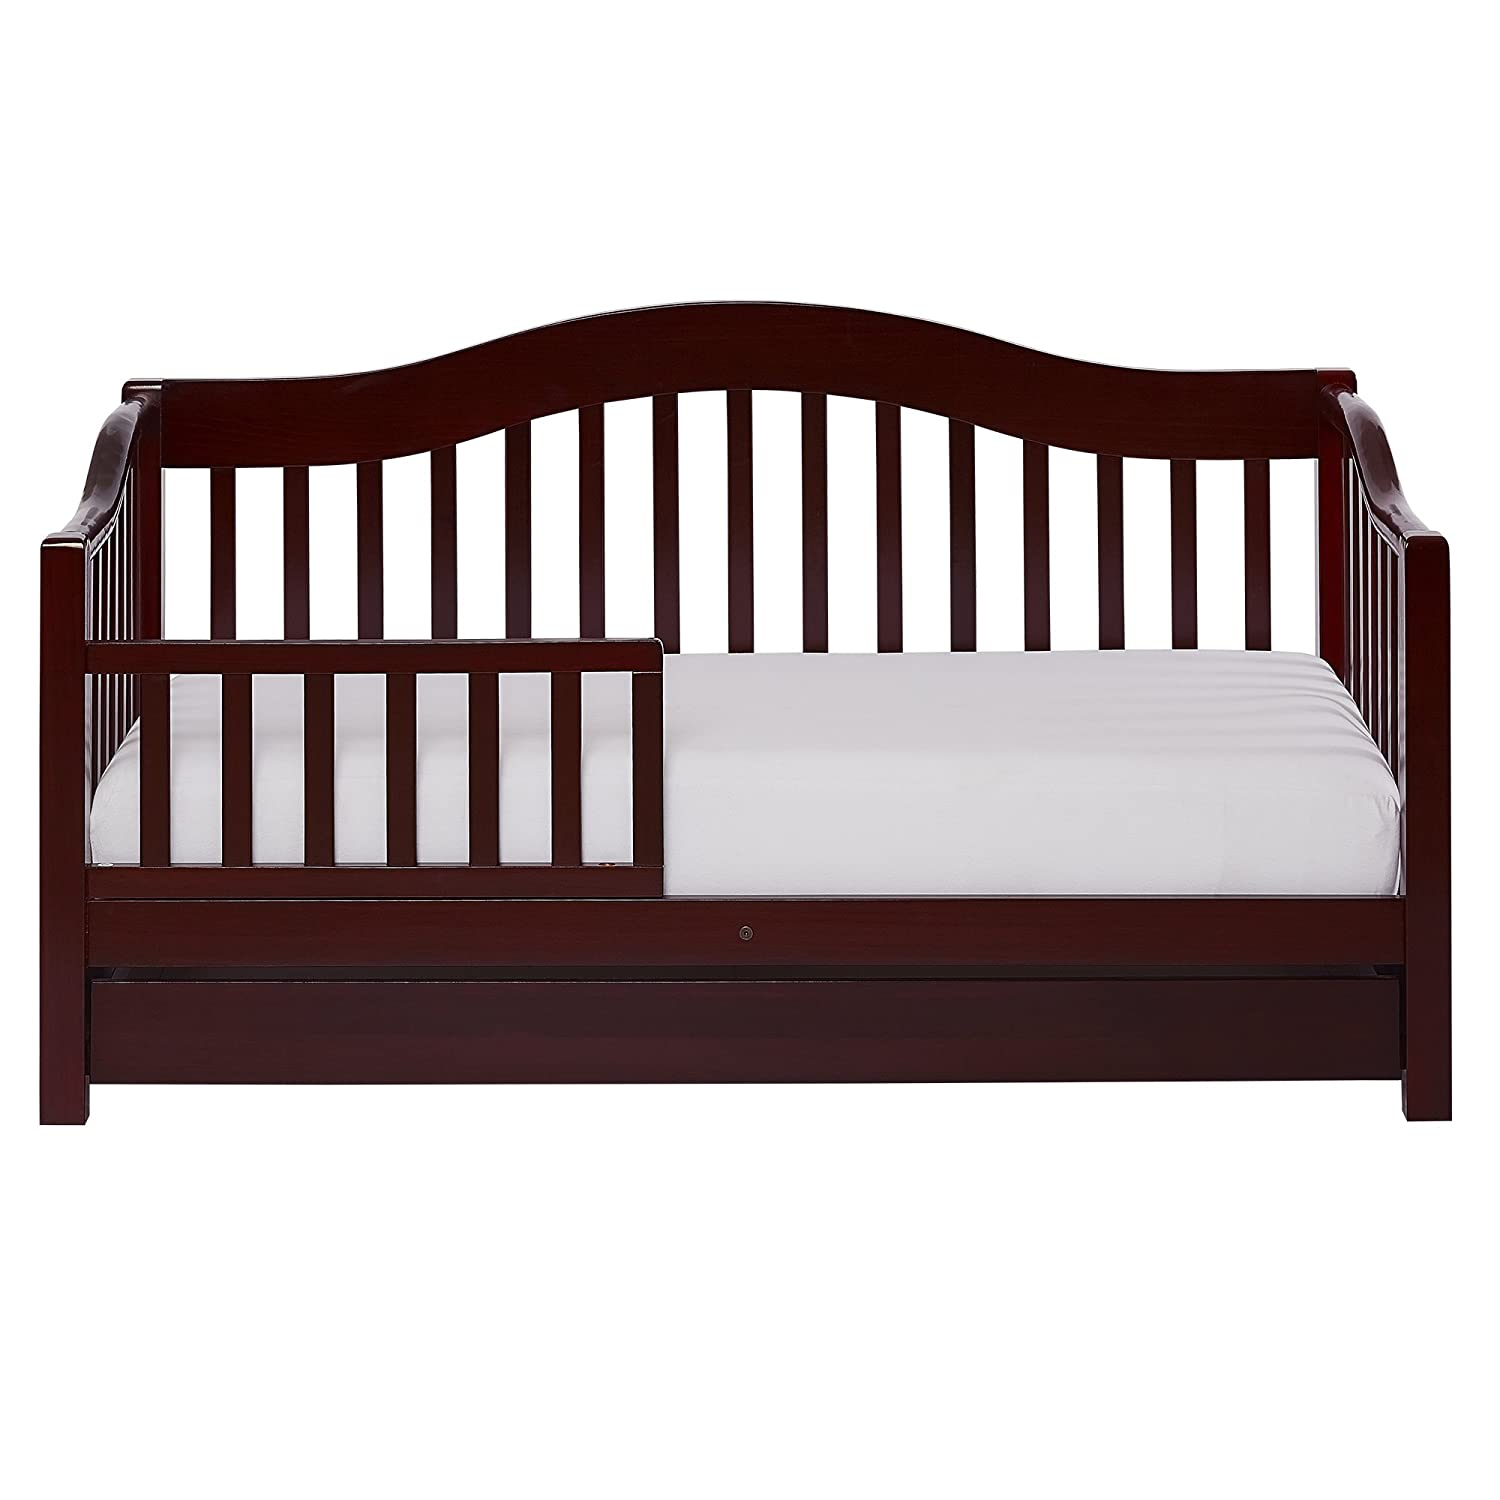 Toddler Bed With Storage Underneath Toddler Bed With